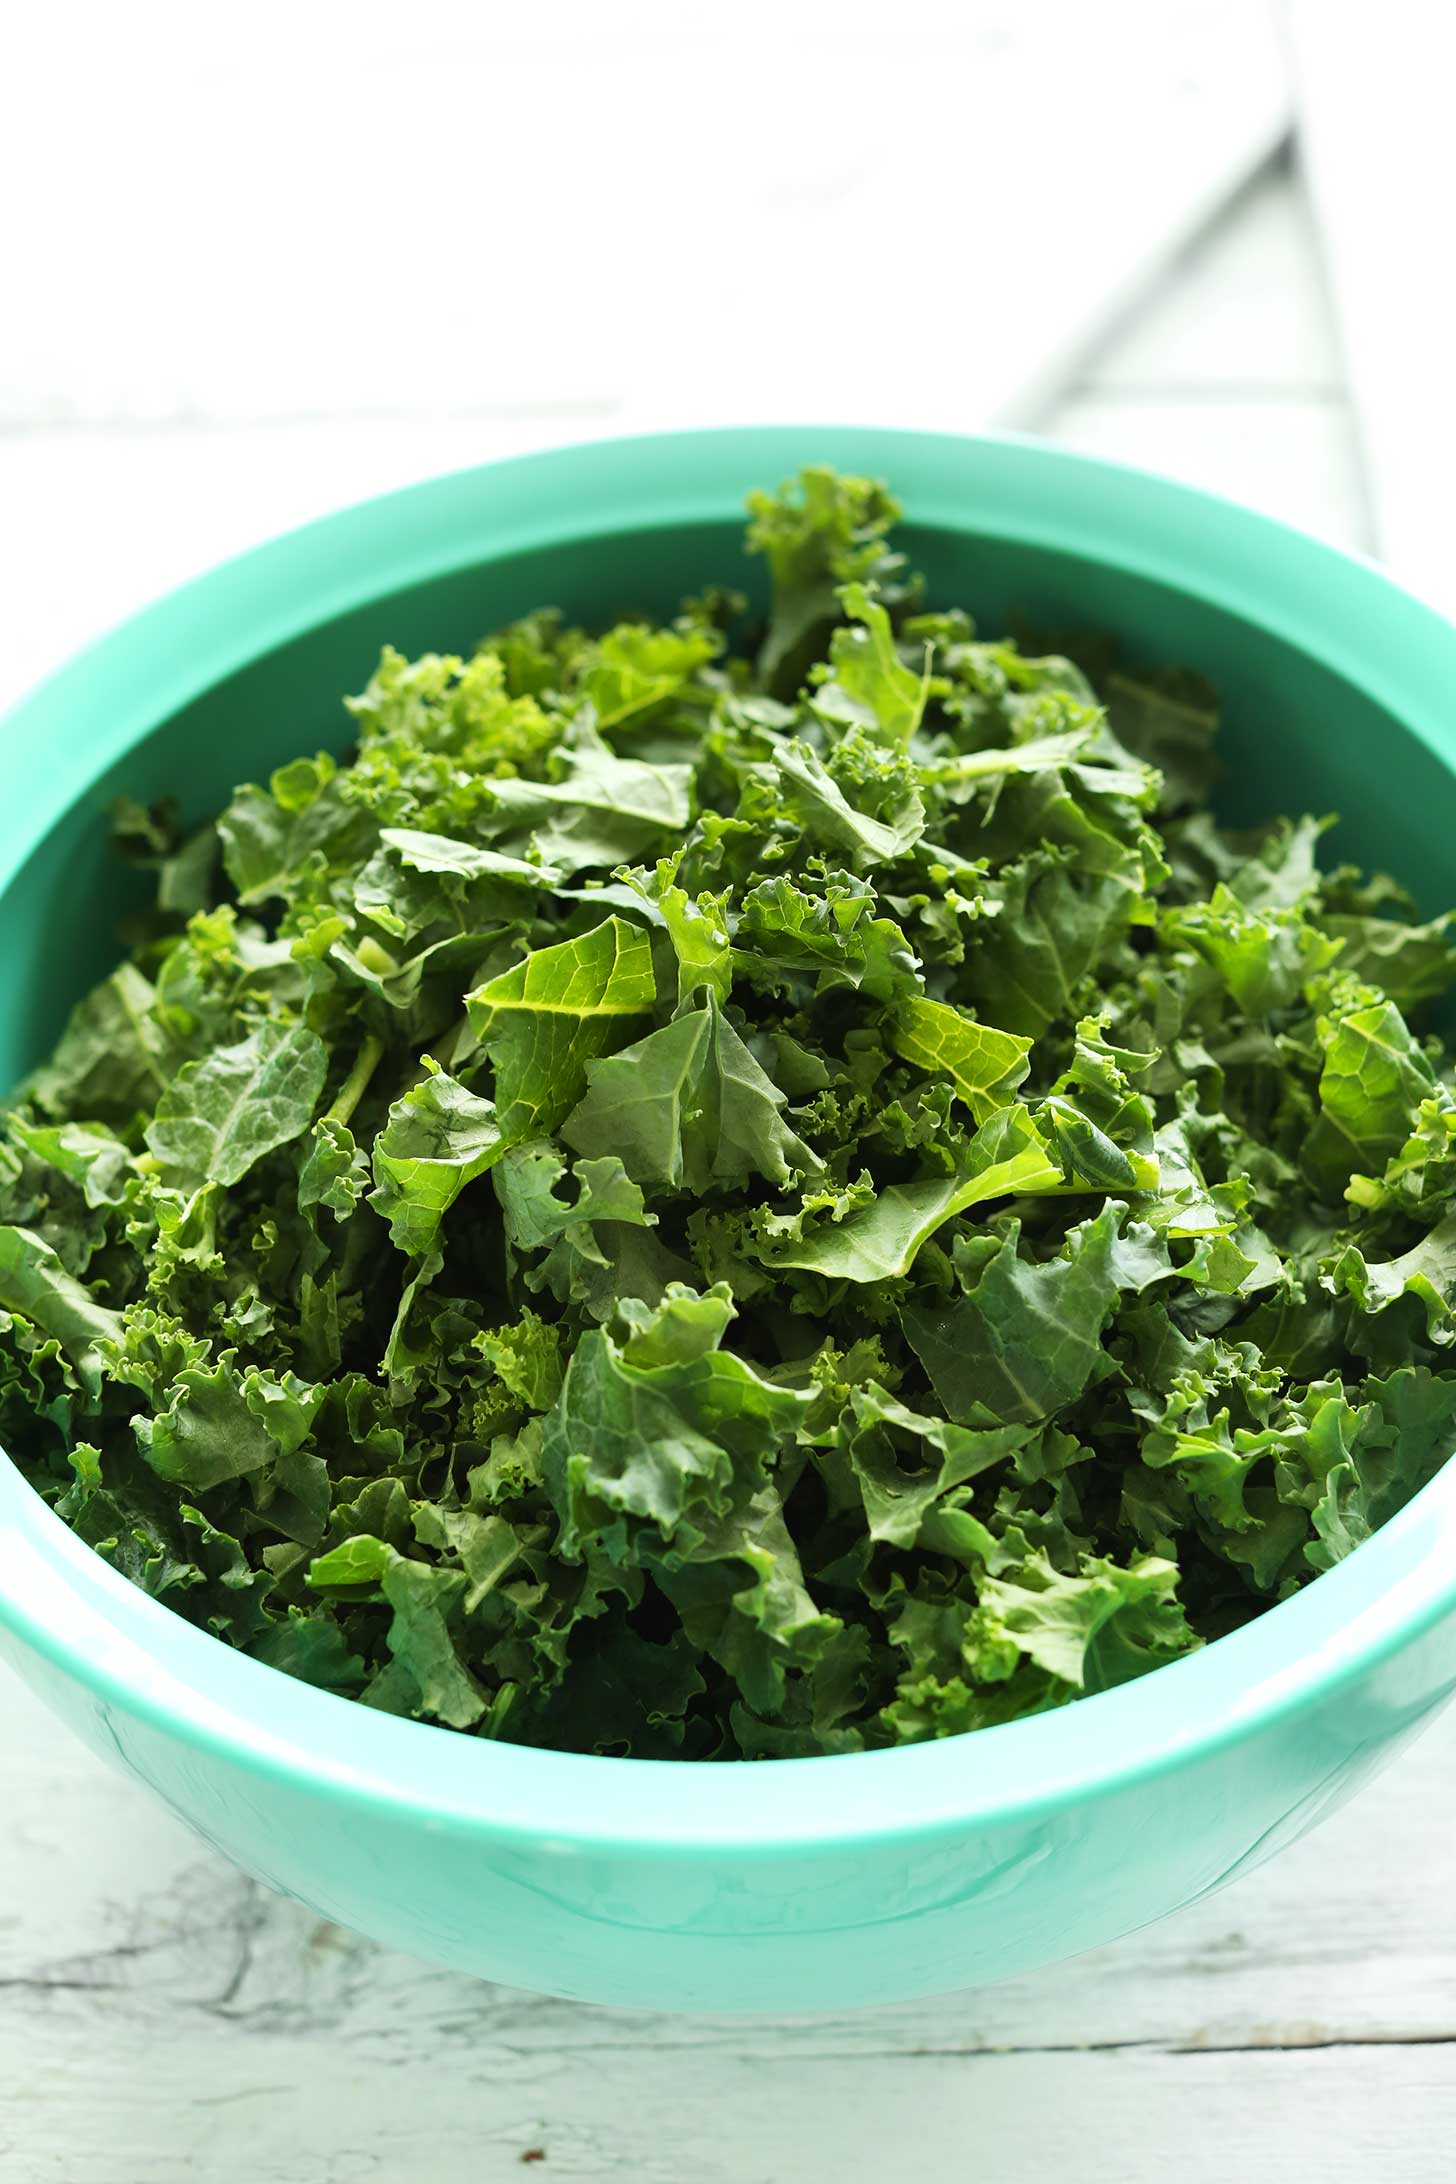 Big bowl of kale ready to be made into delicious vegan kale chips